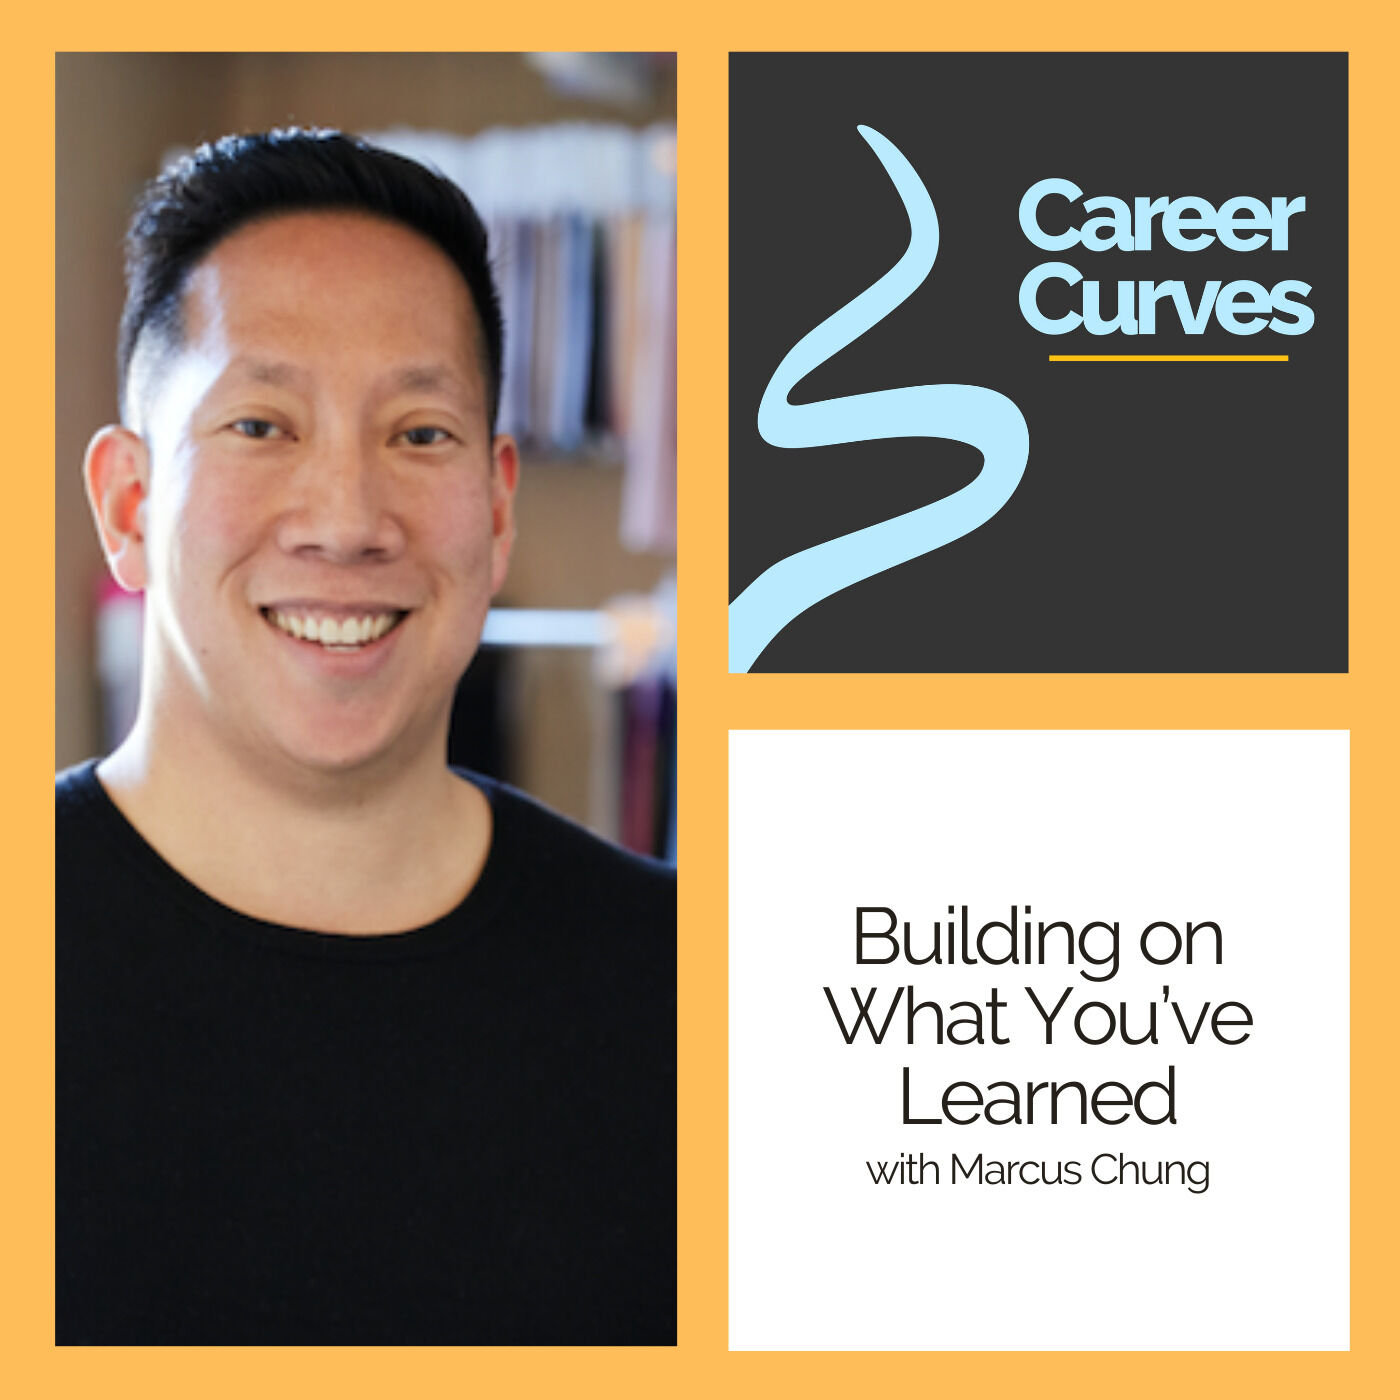 Building on What You've Learned with Marcus Chung